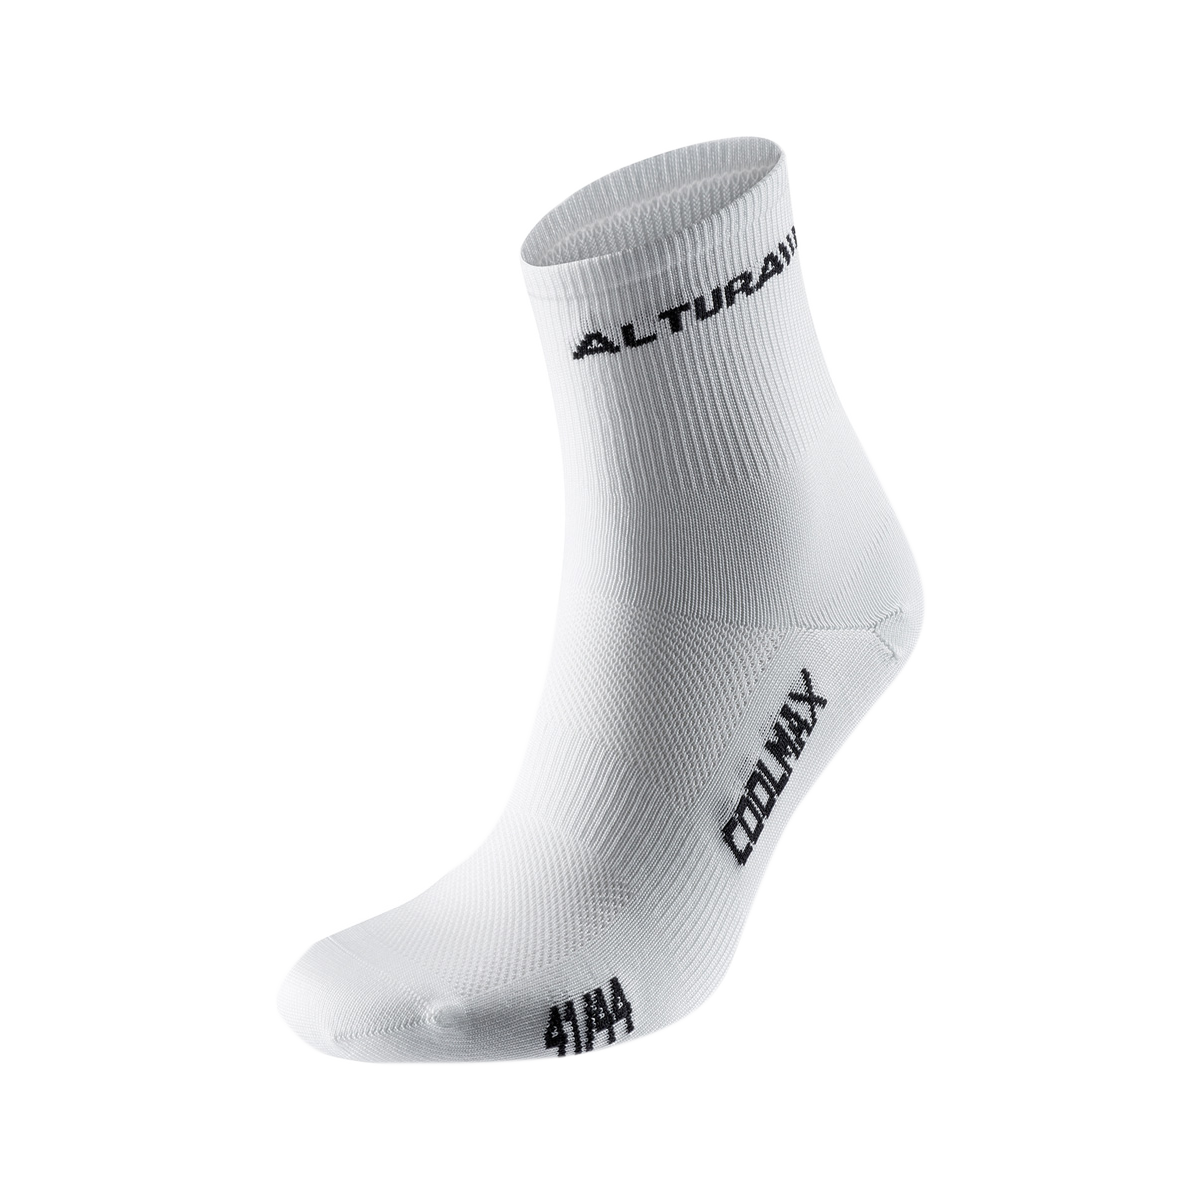 COOLMAX SPORT SOCK 3 PACK 2015: BLACK S (4-6)